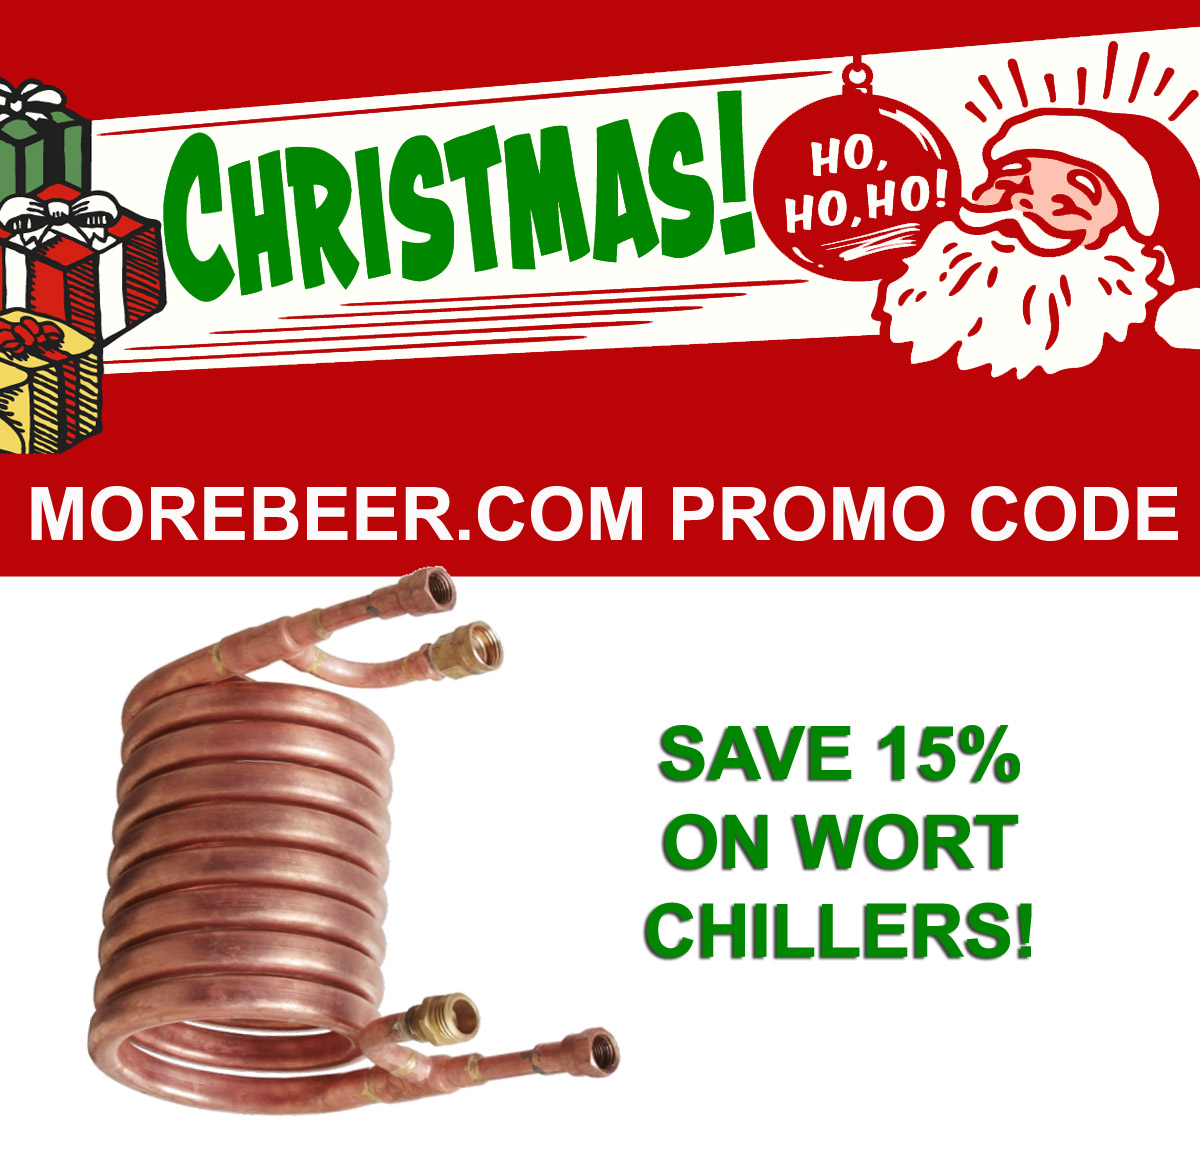 Coupon Code For Save 15% On Wort Chillers Today Only At MoreBeer! Coupon Code